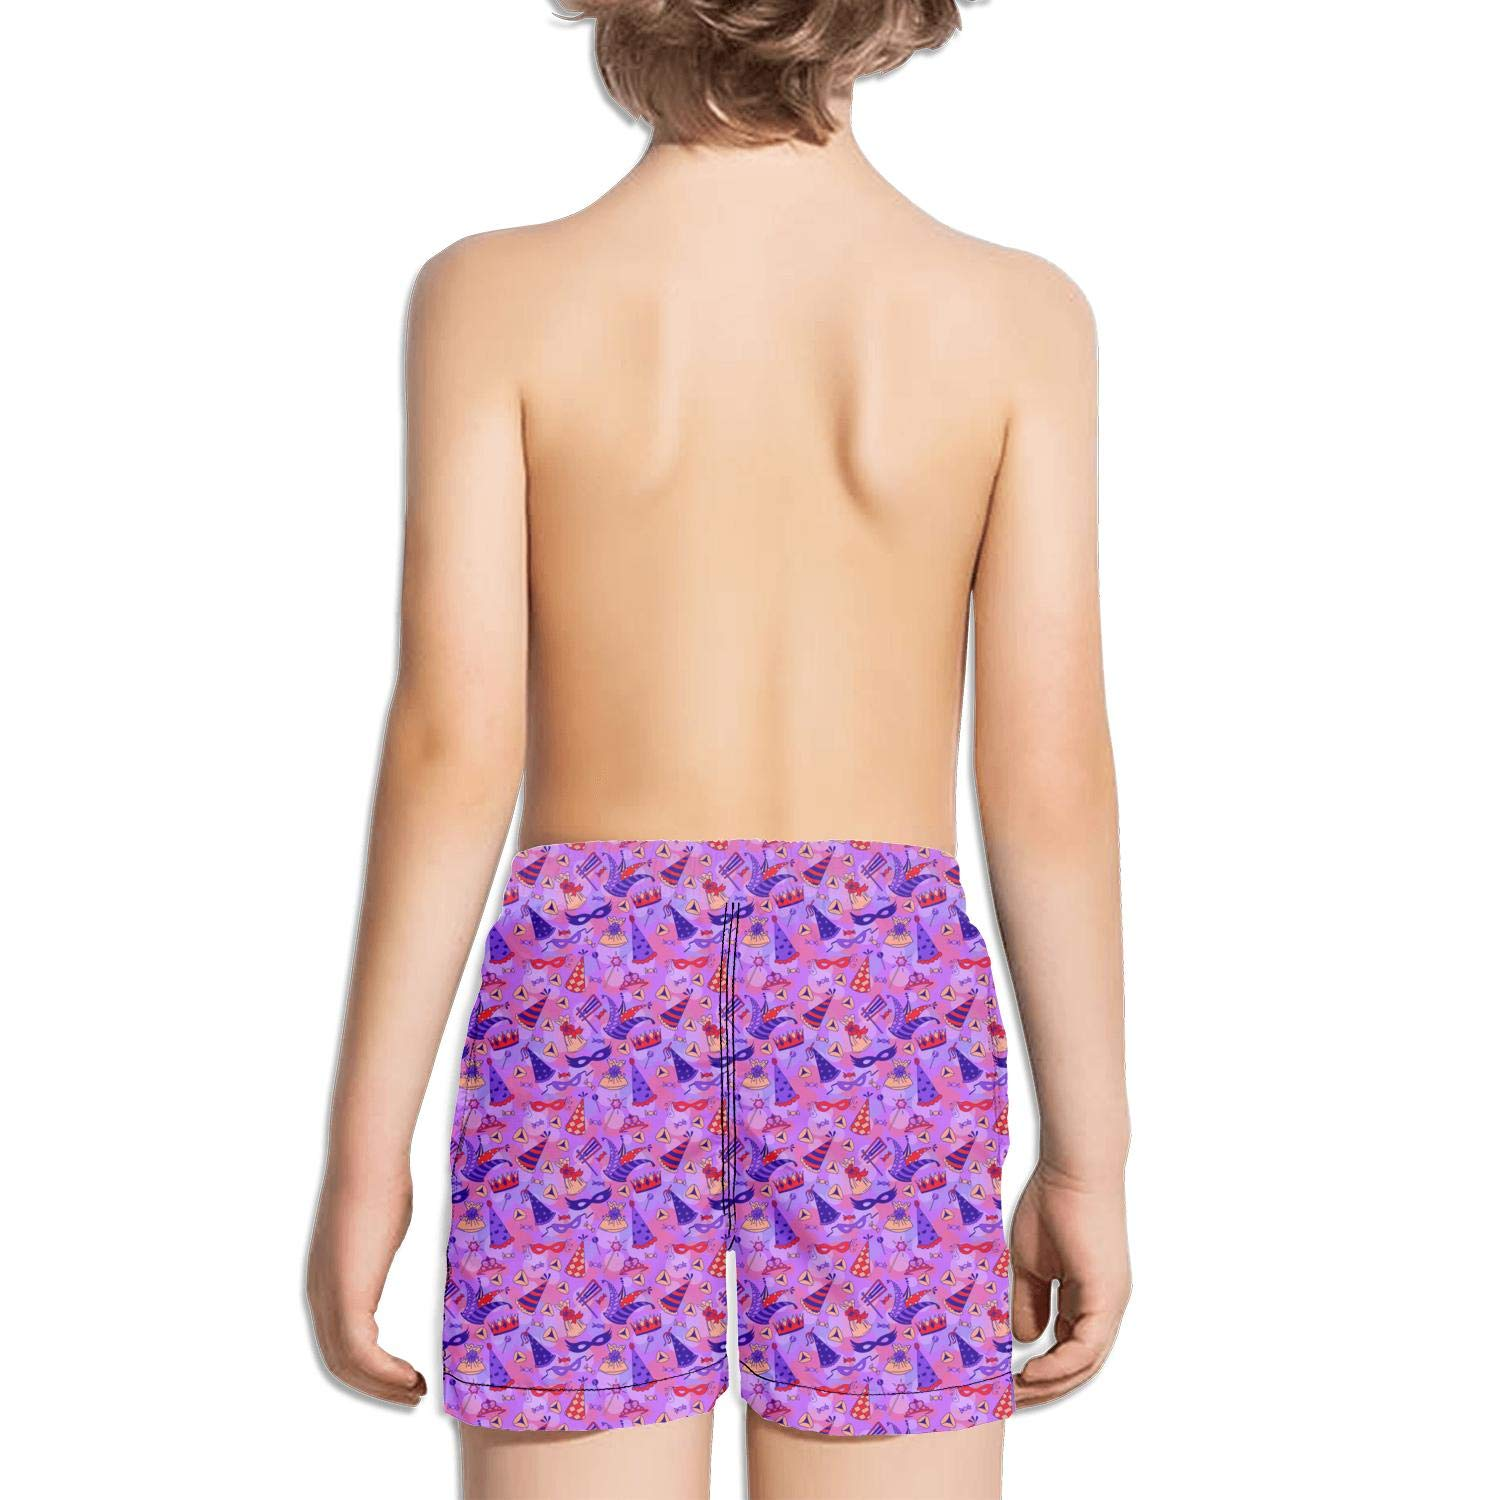 Happy Purim Purple Collection Collage Kids Solid Board Fully Lined Retro Swimming Trunks Shorts